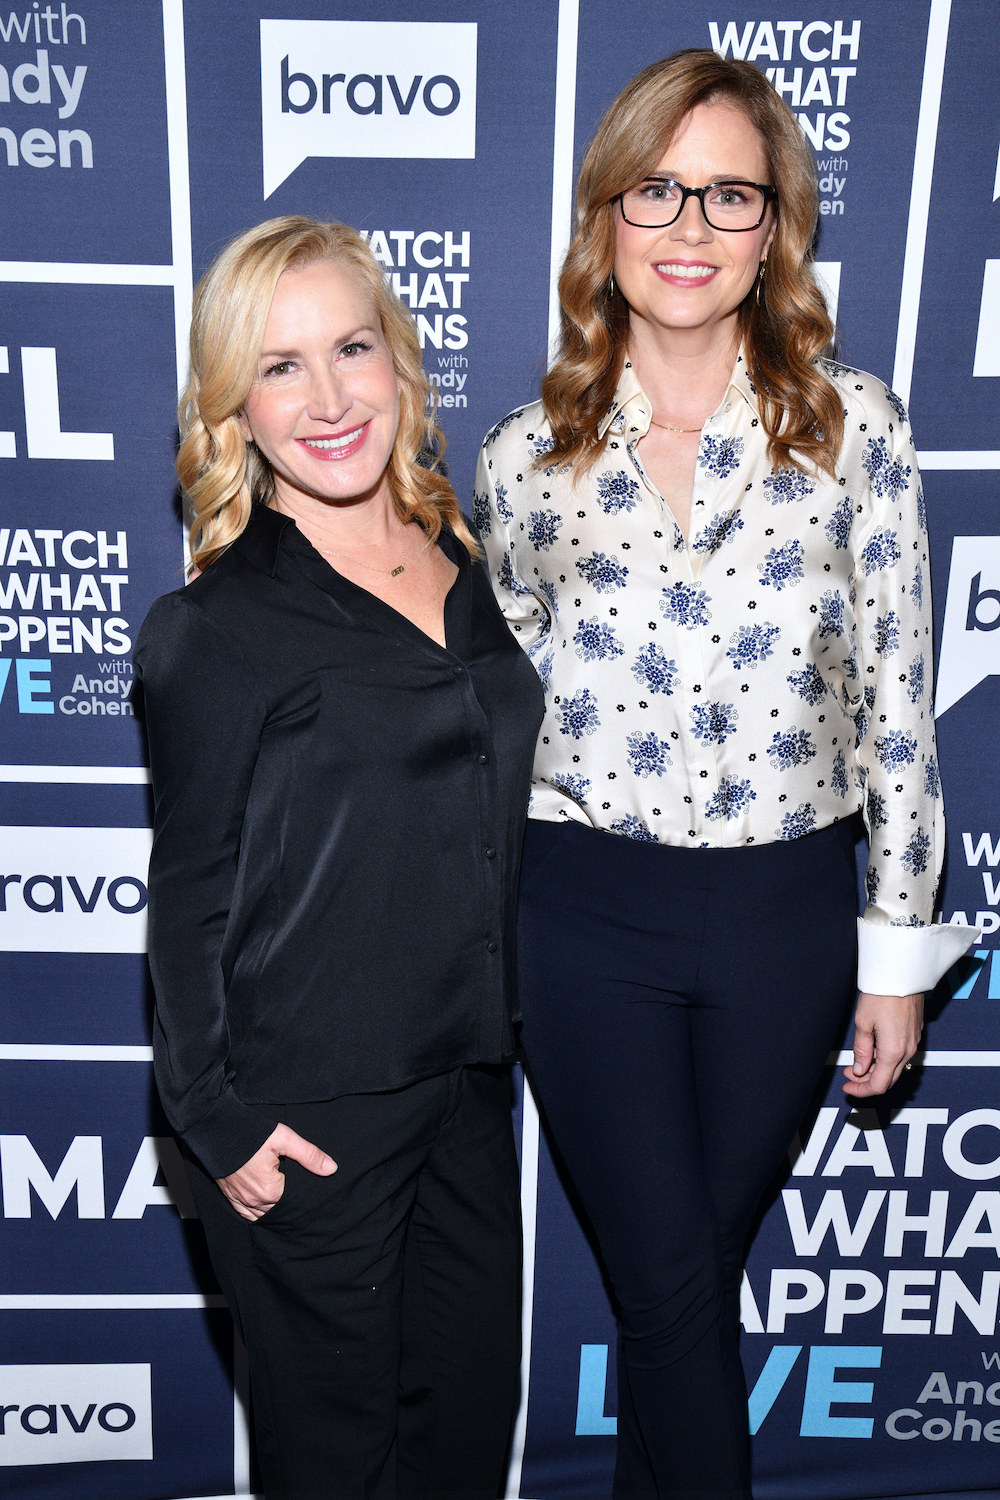 Angela Kinsey and Jenna Fischer at Watch What Happens Live With Andy Cohen